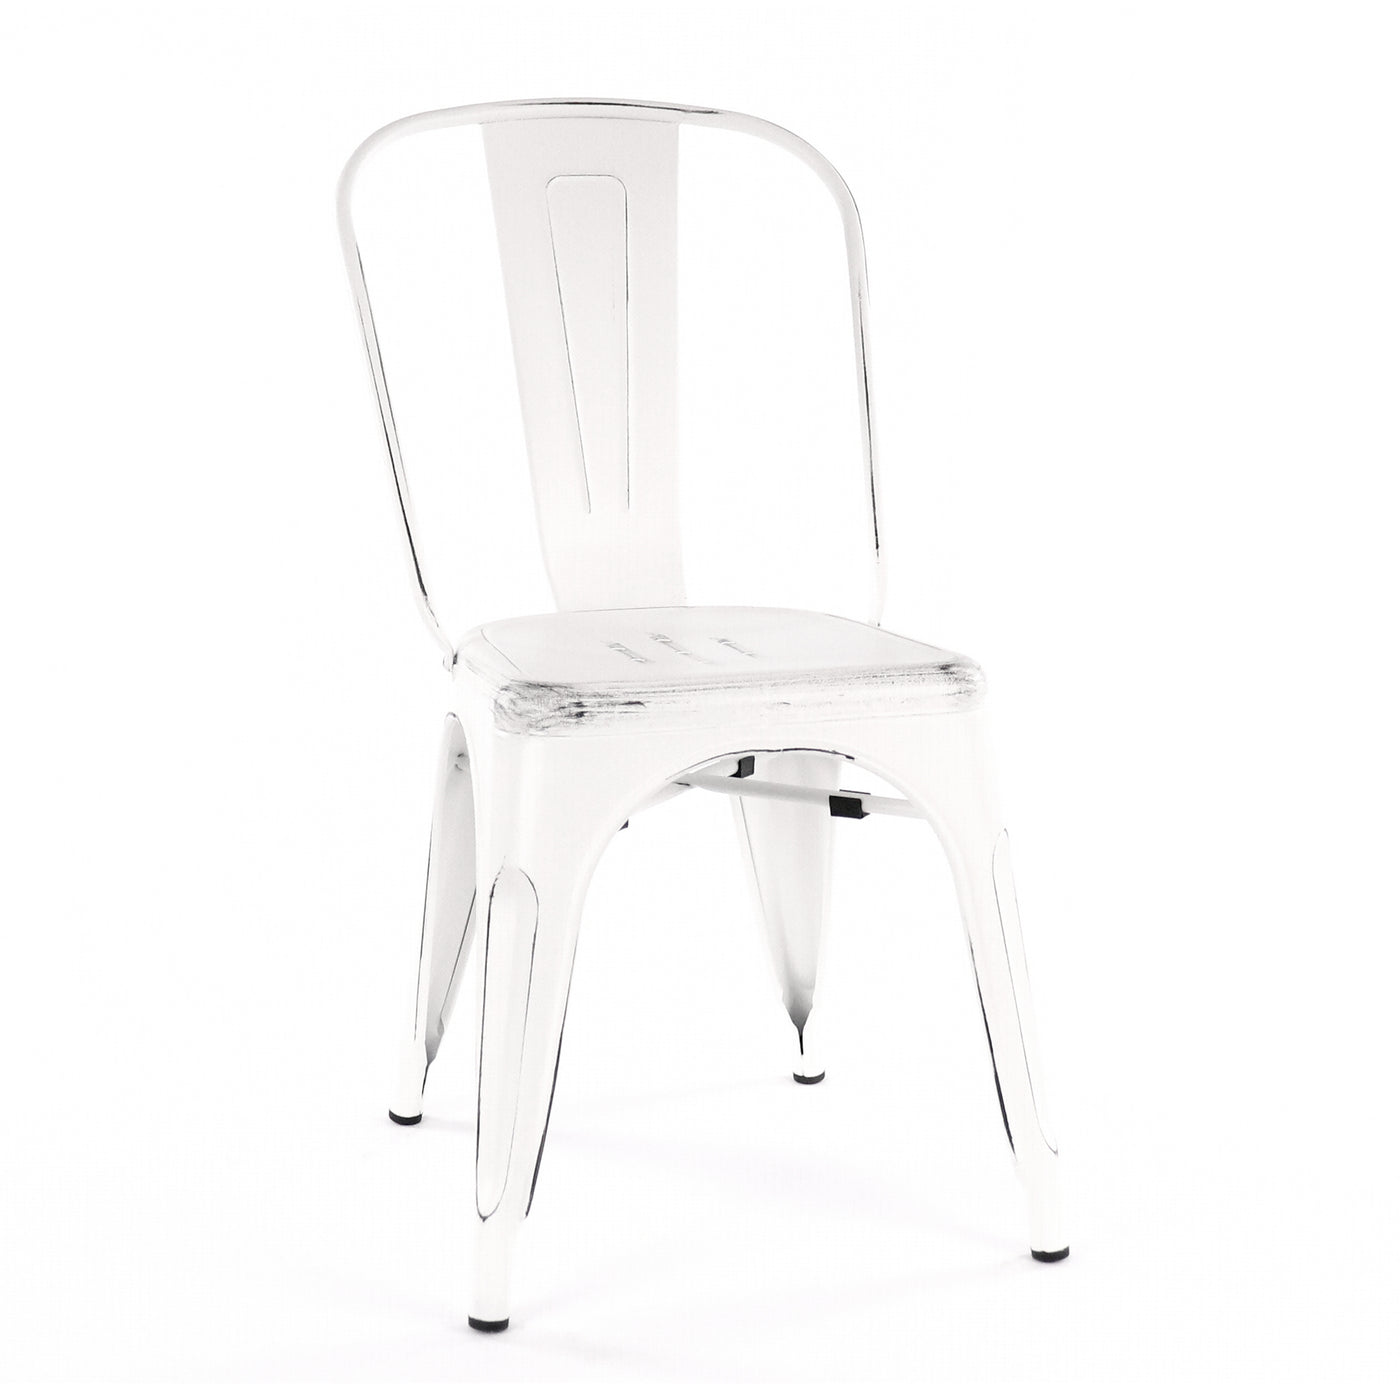 Design Lab MN LS-9000-WHTBLK Dreux White/Black Dining Chair Set of 4